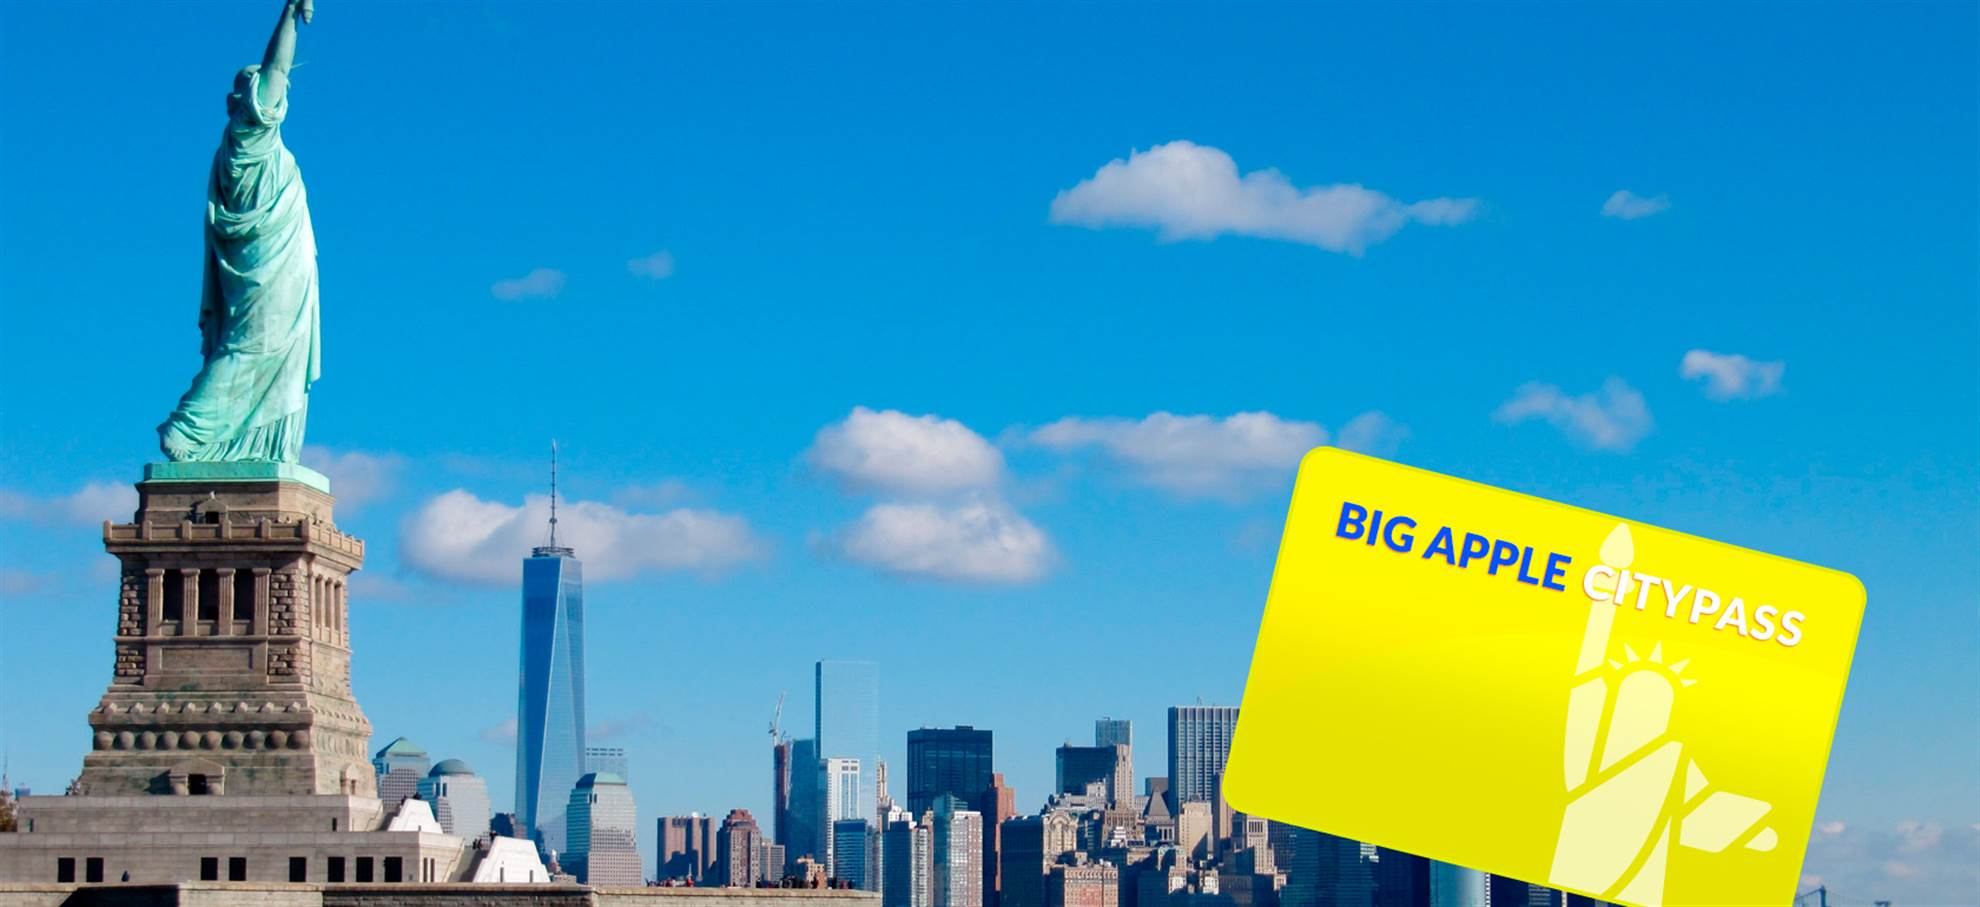 Big Apple City Pass (Incluye Traslado del Aeropuerto)